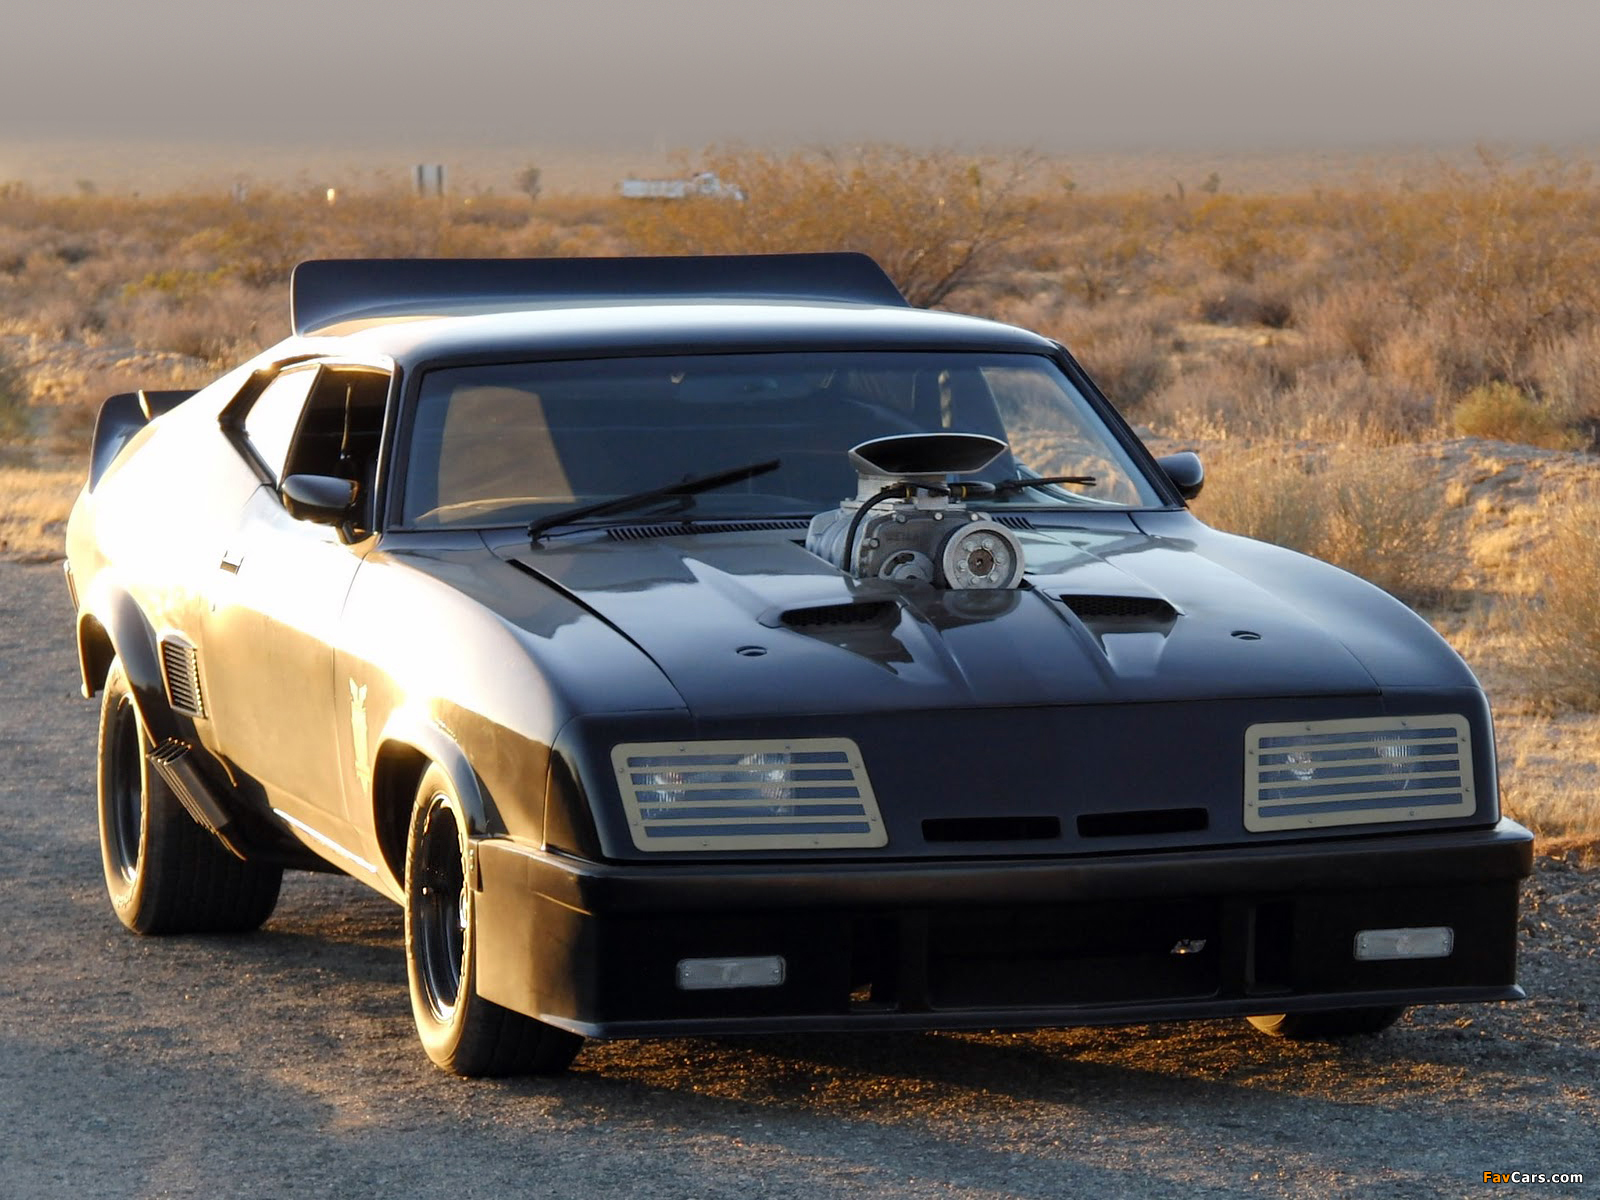 Ford Falcon GT Pursuit Special V8 Interceptor XB 1979